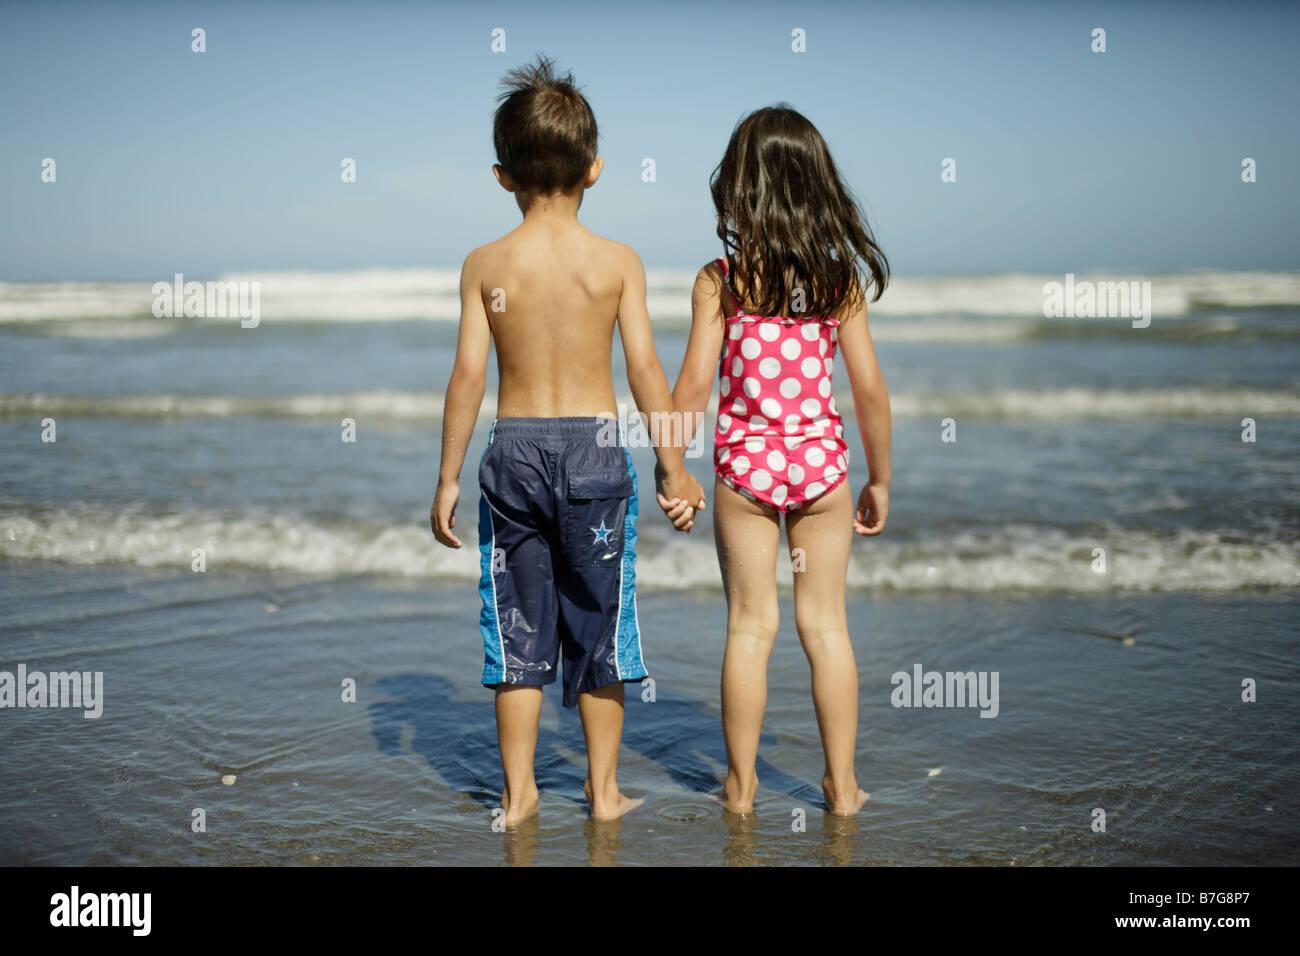 Himatangi beach New Zealand. Girl aged five and boy aged six look out to sea. - Stock Image